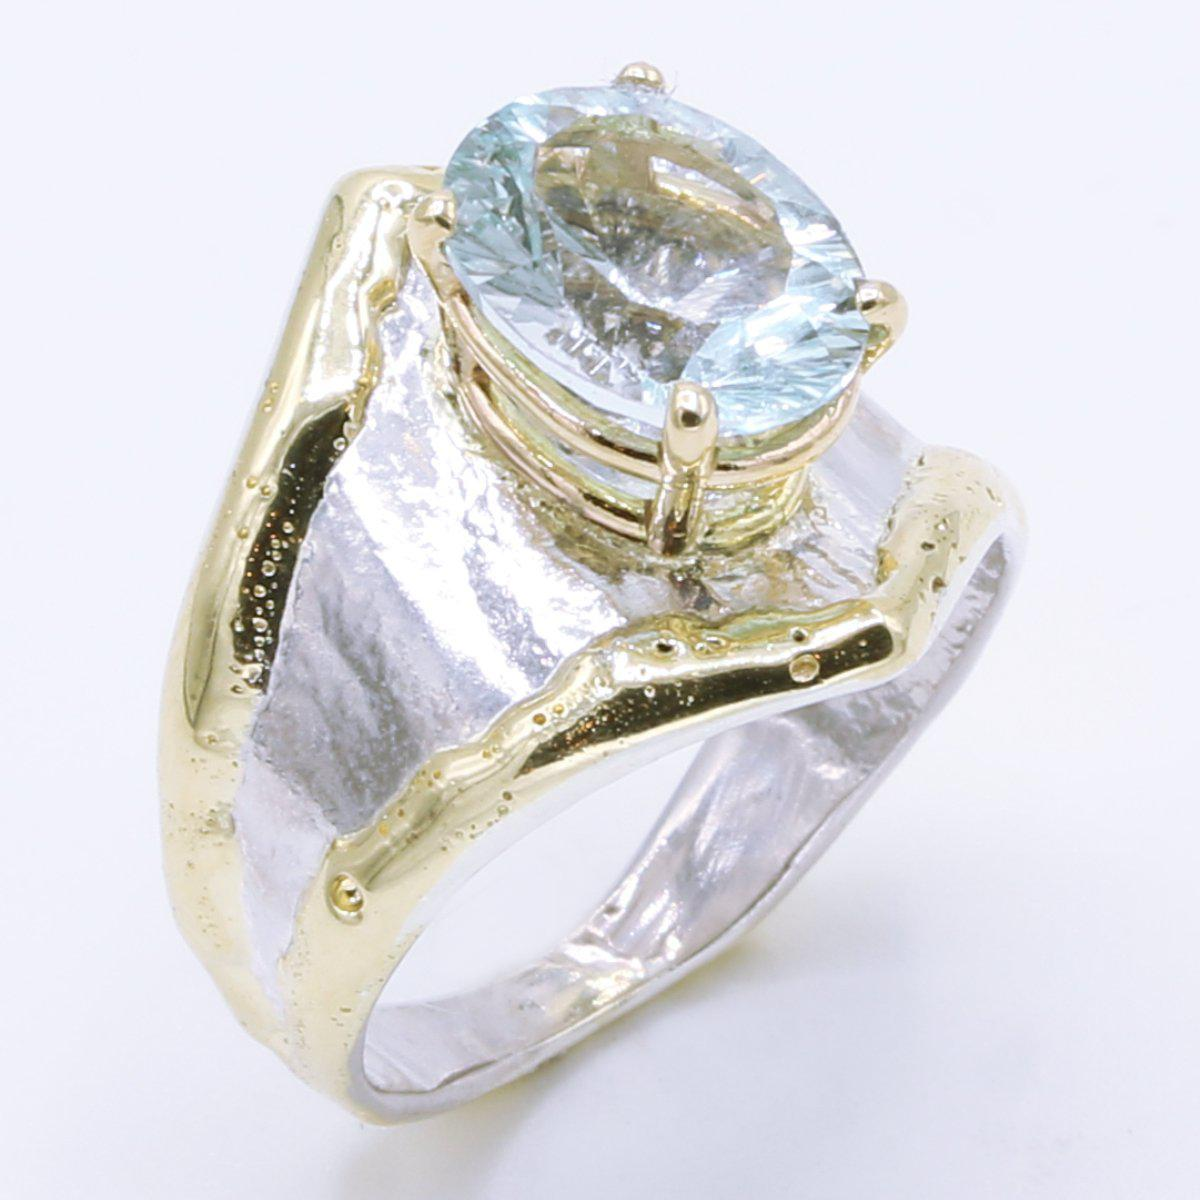 14K Gold & Crystalline Silver Sky Blue Topaz Ring - 35163-Fusion Designs-Renee Taylor Gallery